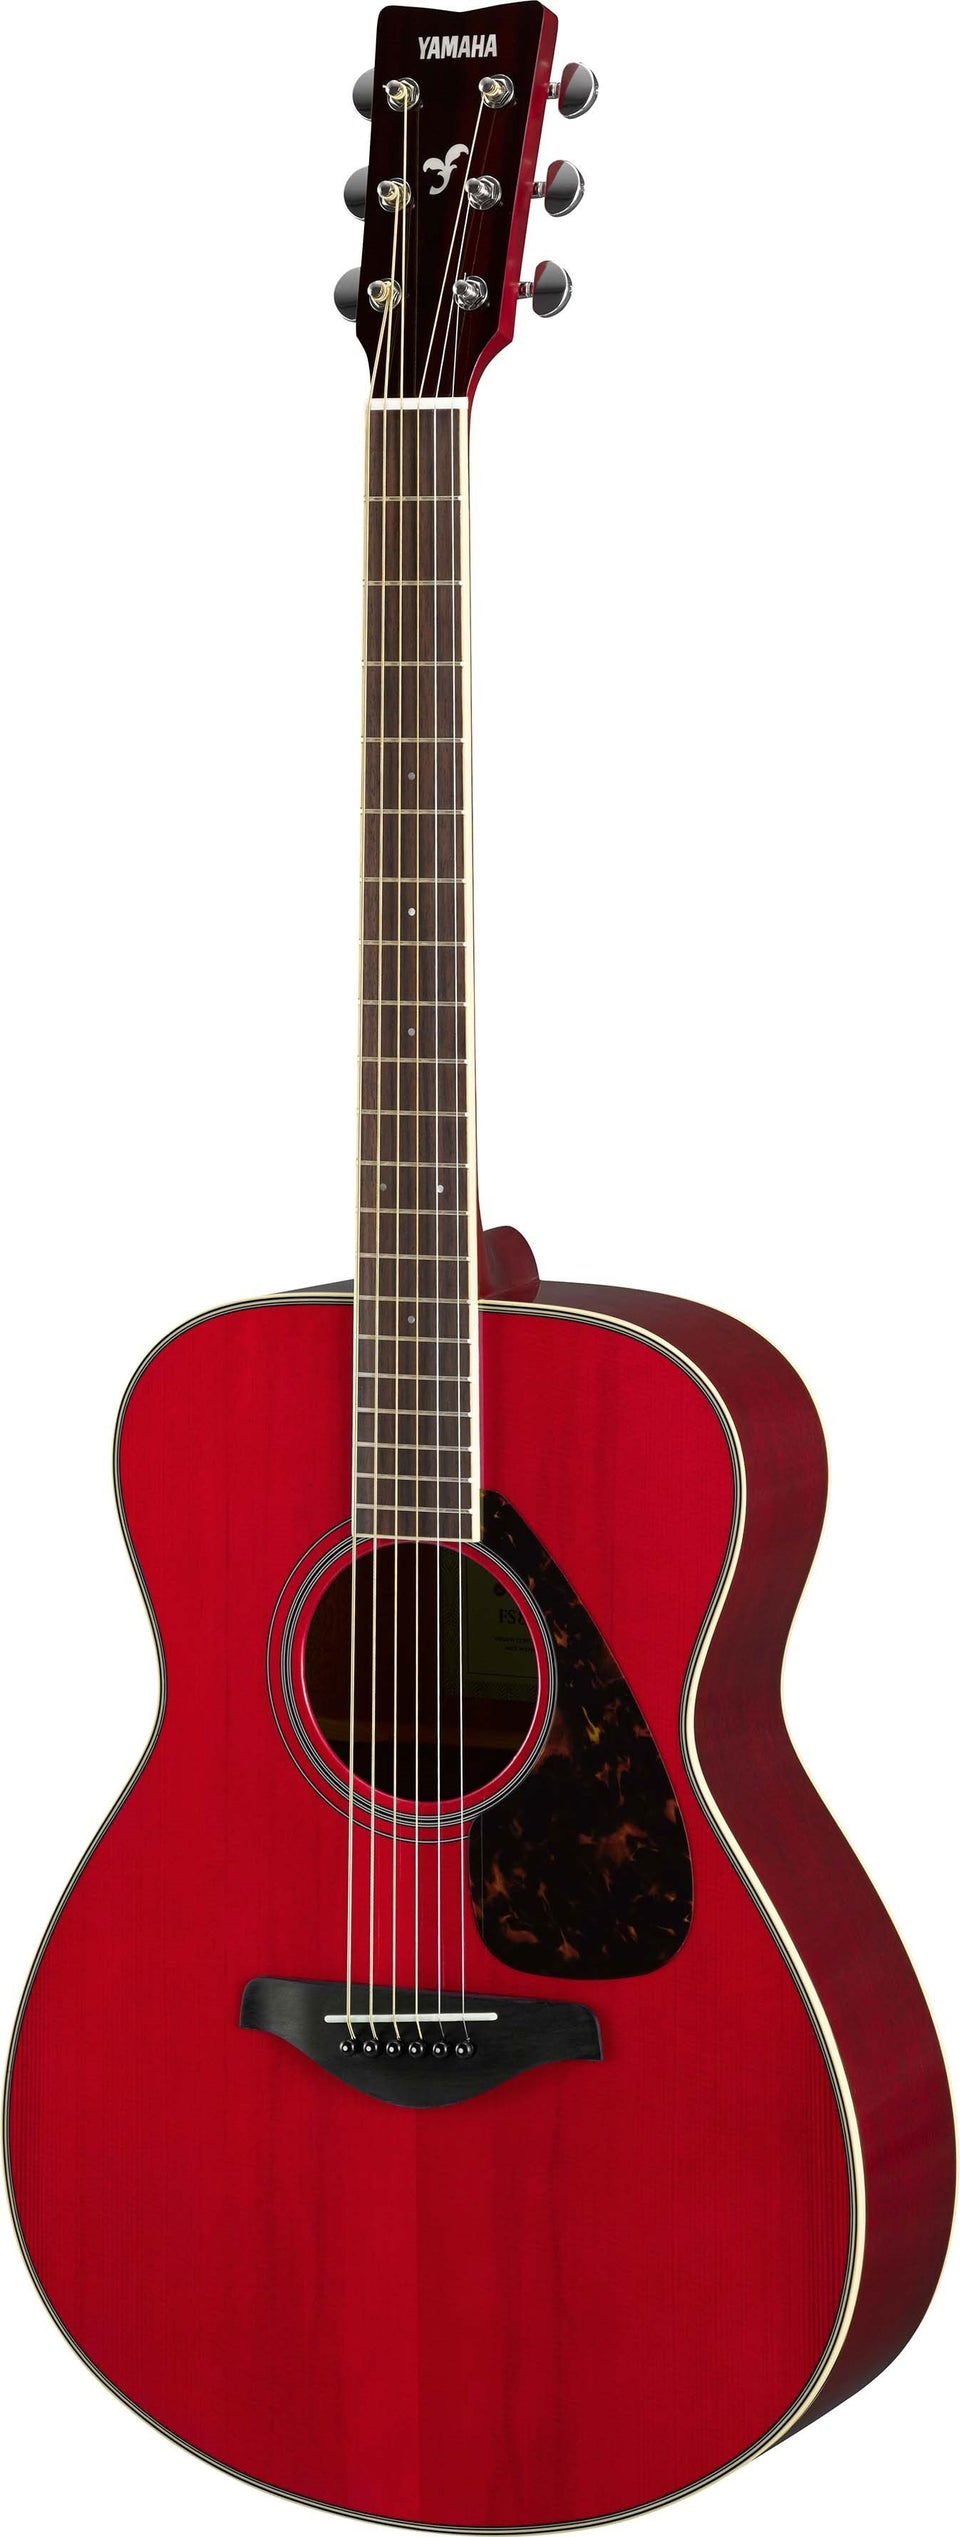 Yamaha FS820 Acoustic Guitar - Ruby Red